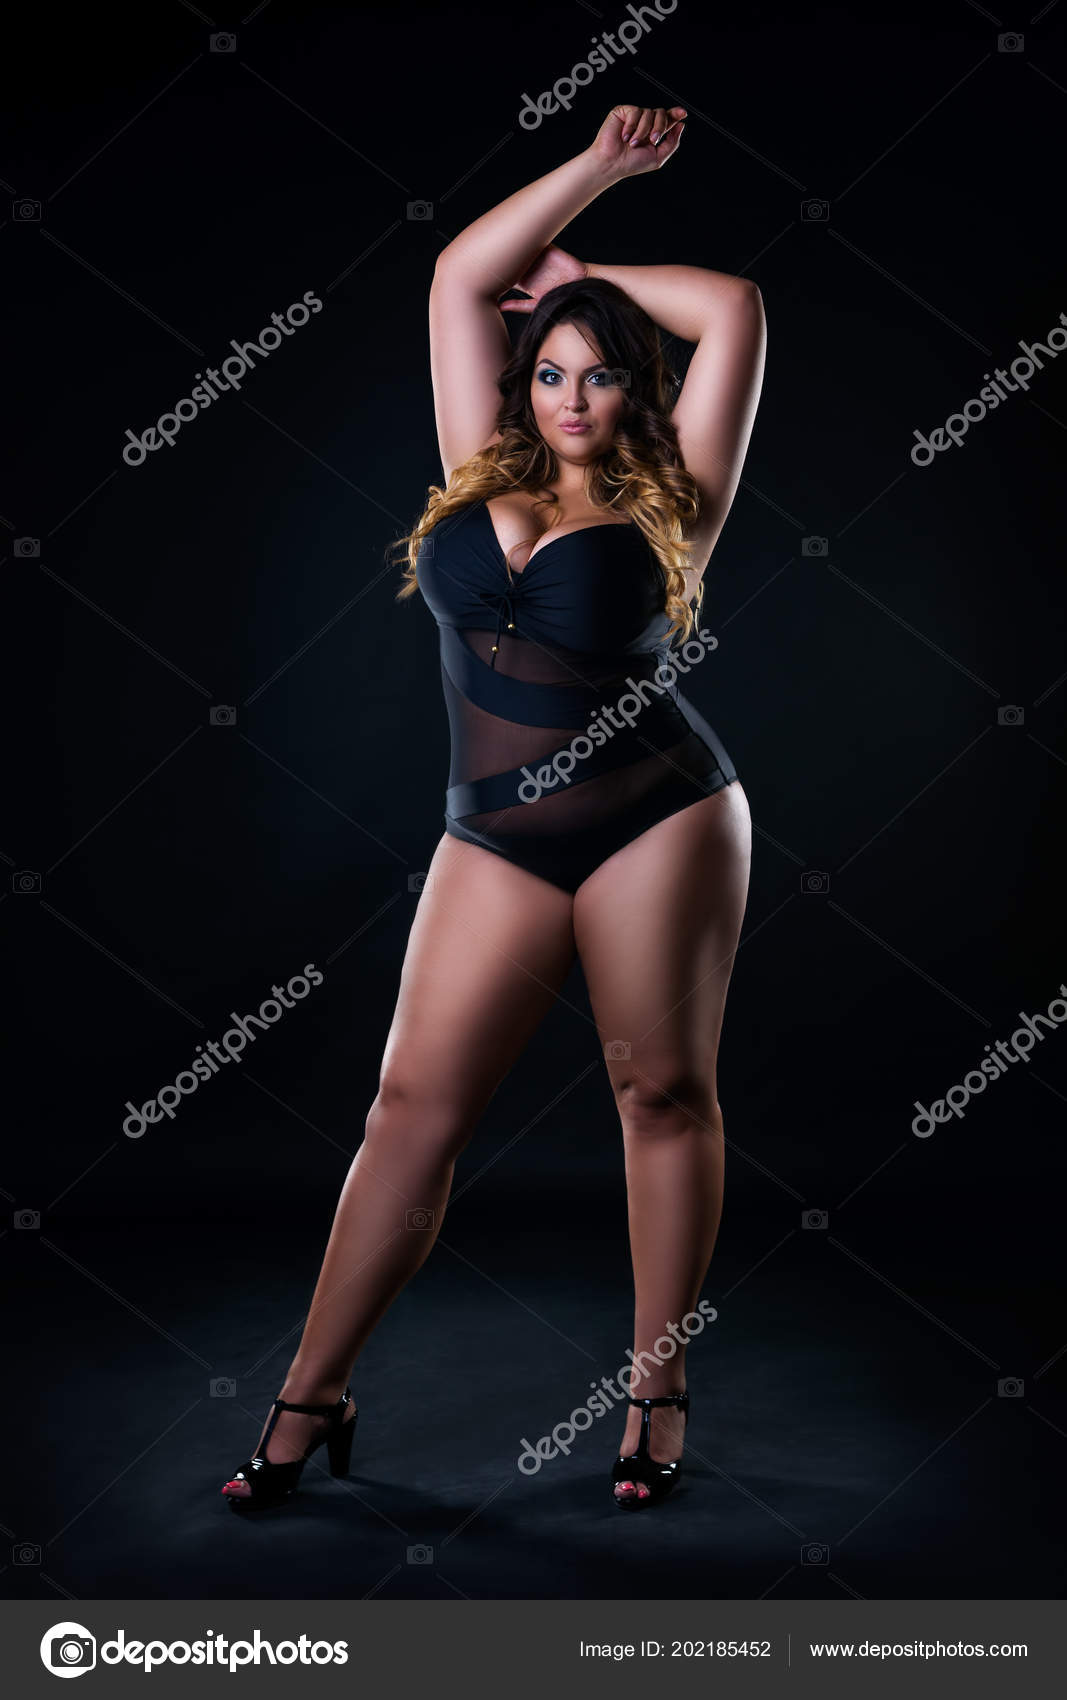 Size Sexy Model Swimsuit Fat Woman Black Studio Background Overweight —  Stock Photo